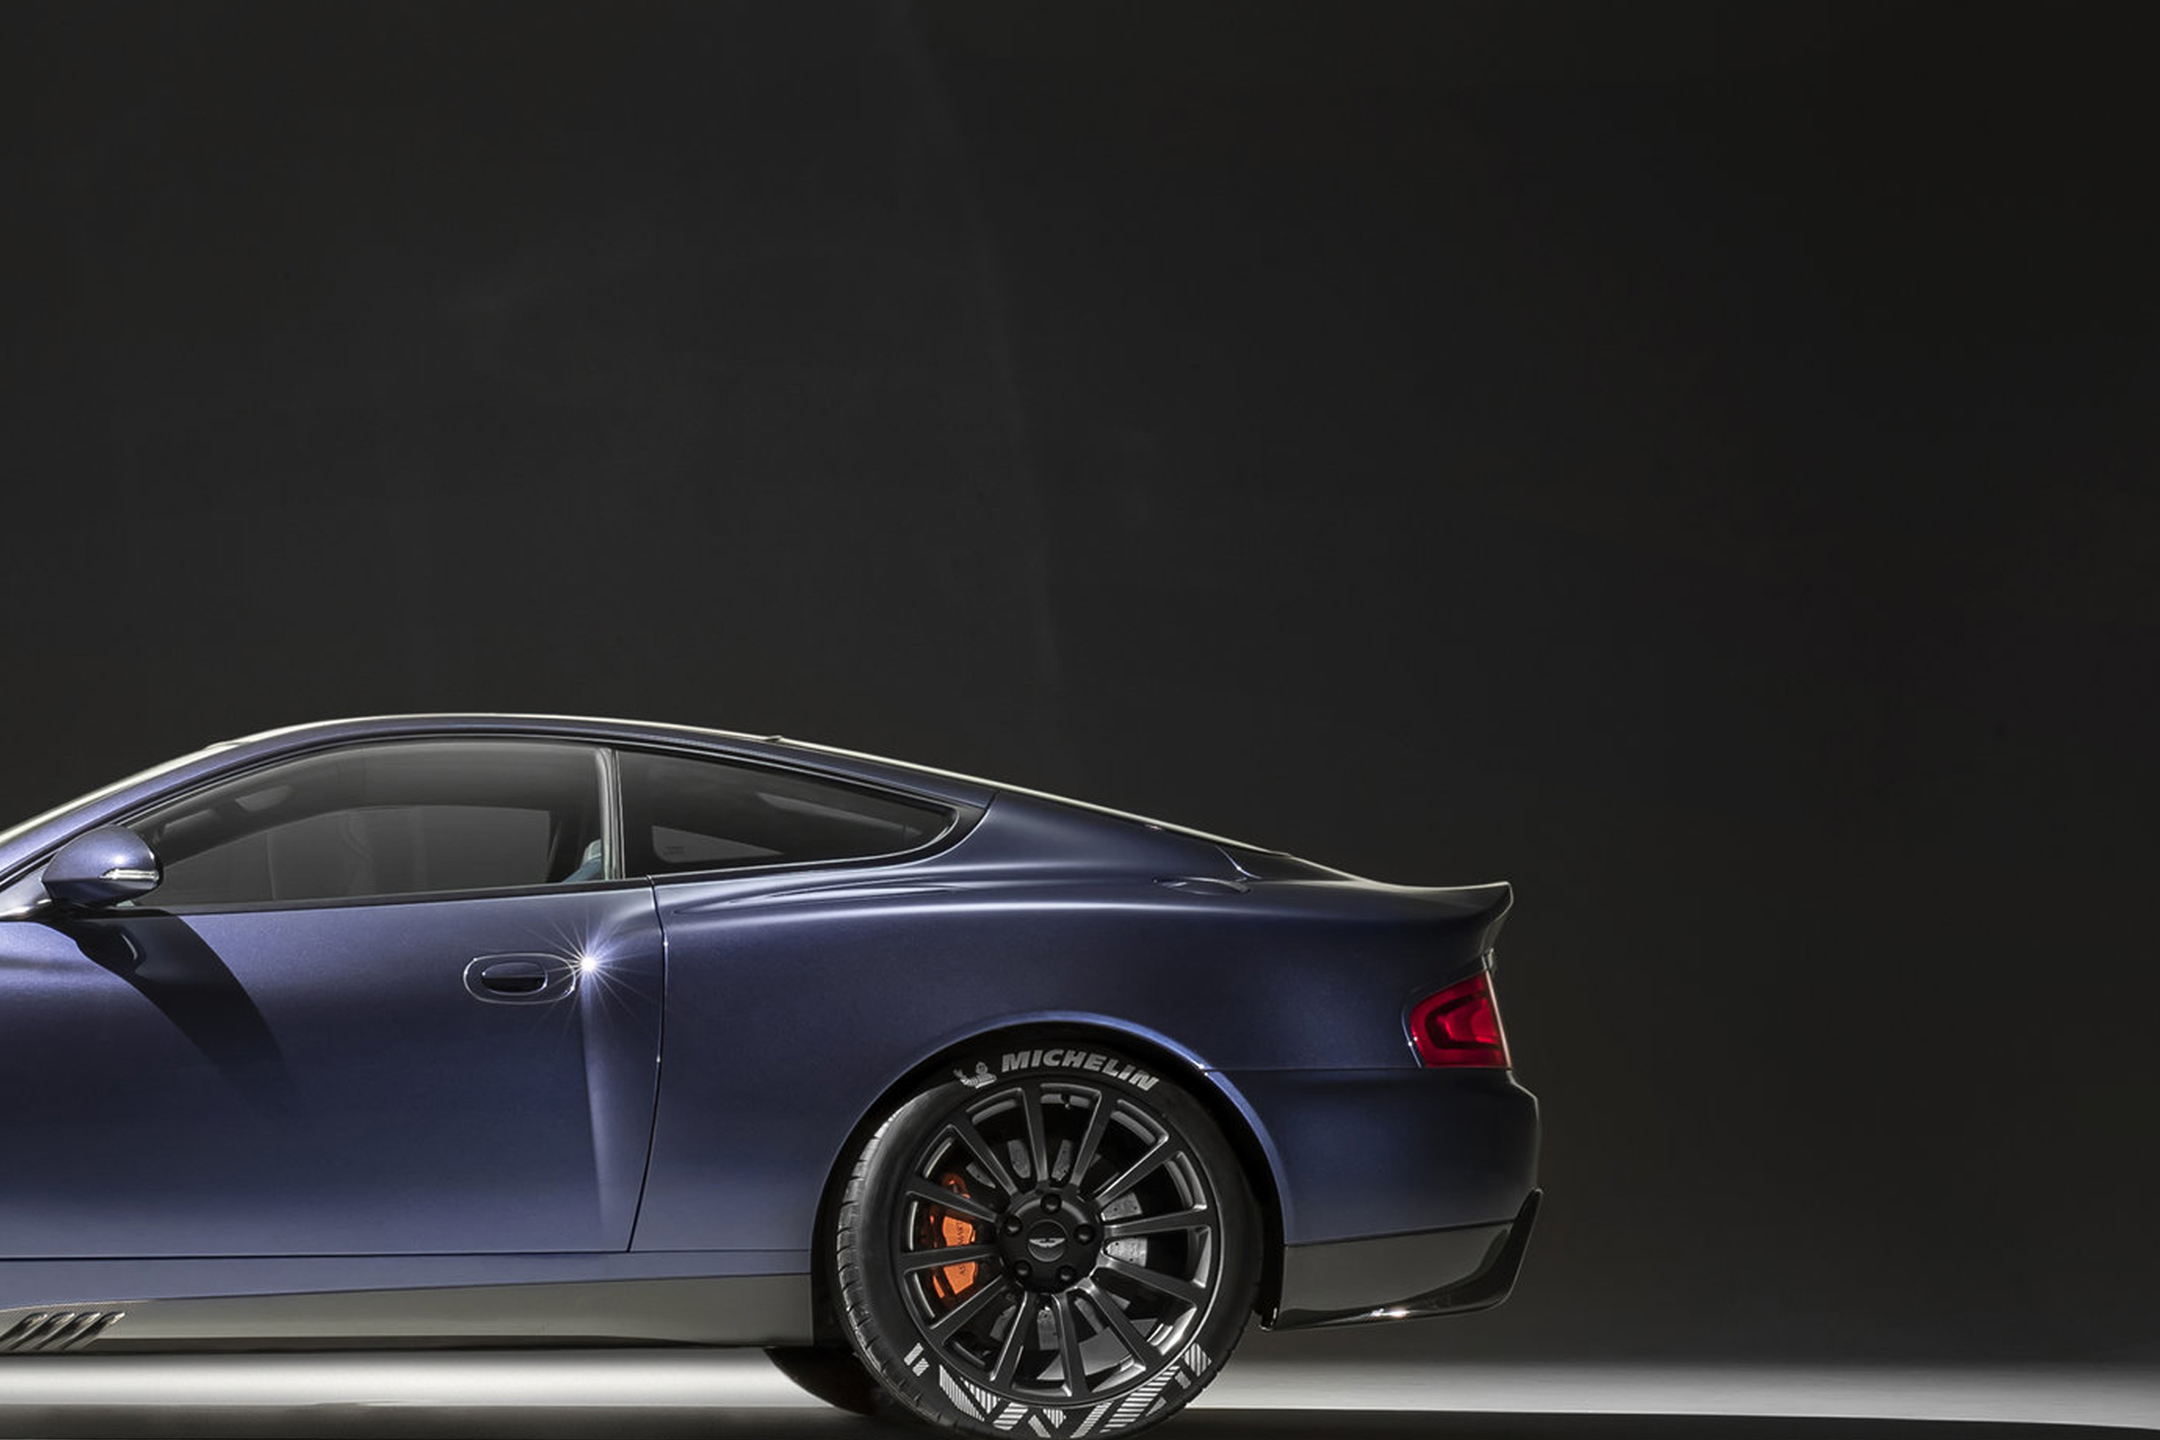 Aston Martin Vanquish 25 by CALLUM - 2019 - rear wheel / jante arrière